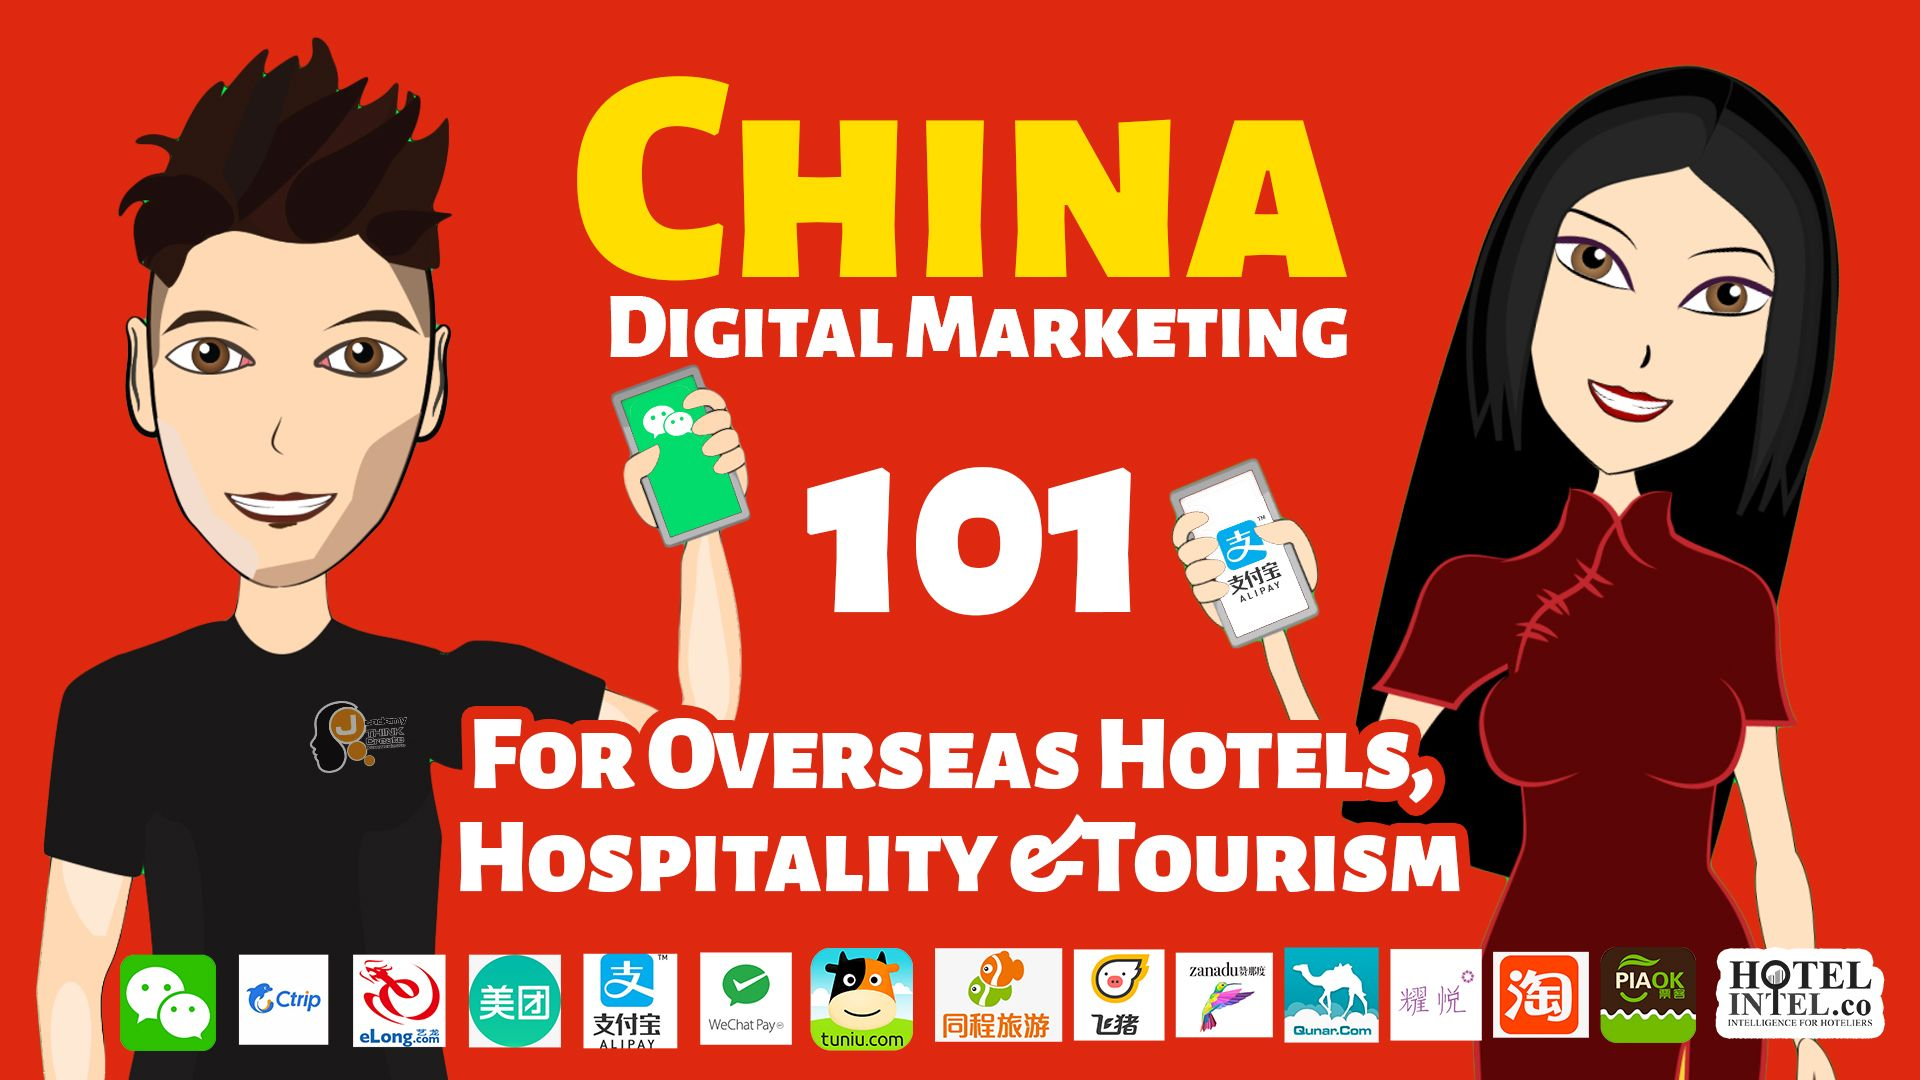 China is Too Big Too Ignore - China Digital Marketing 101